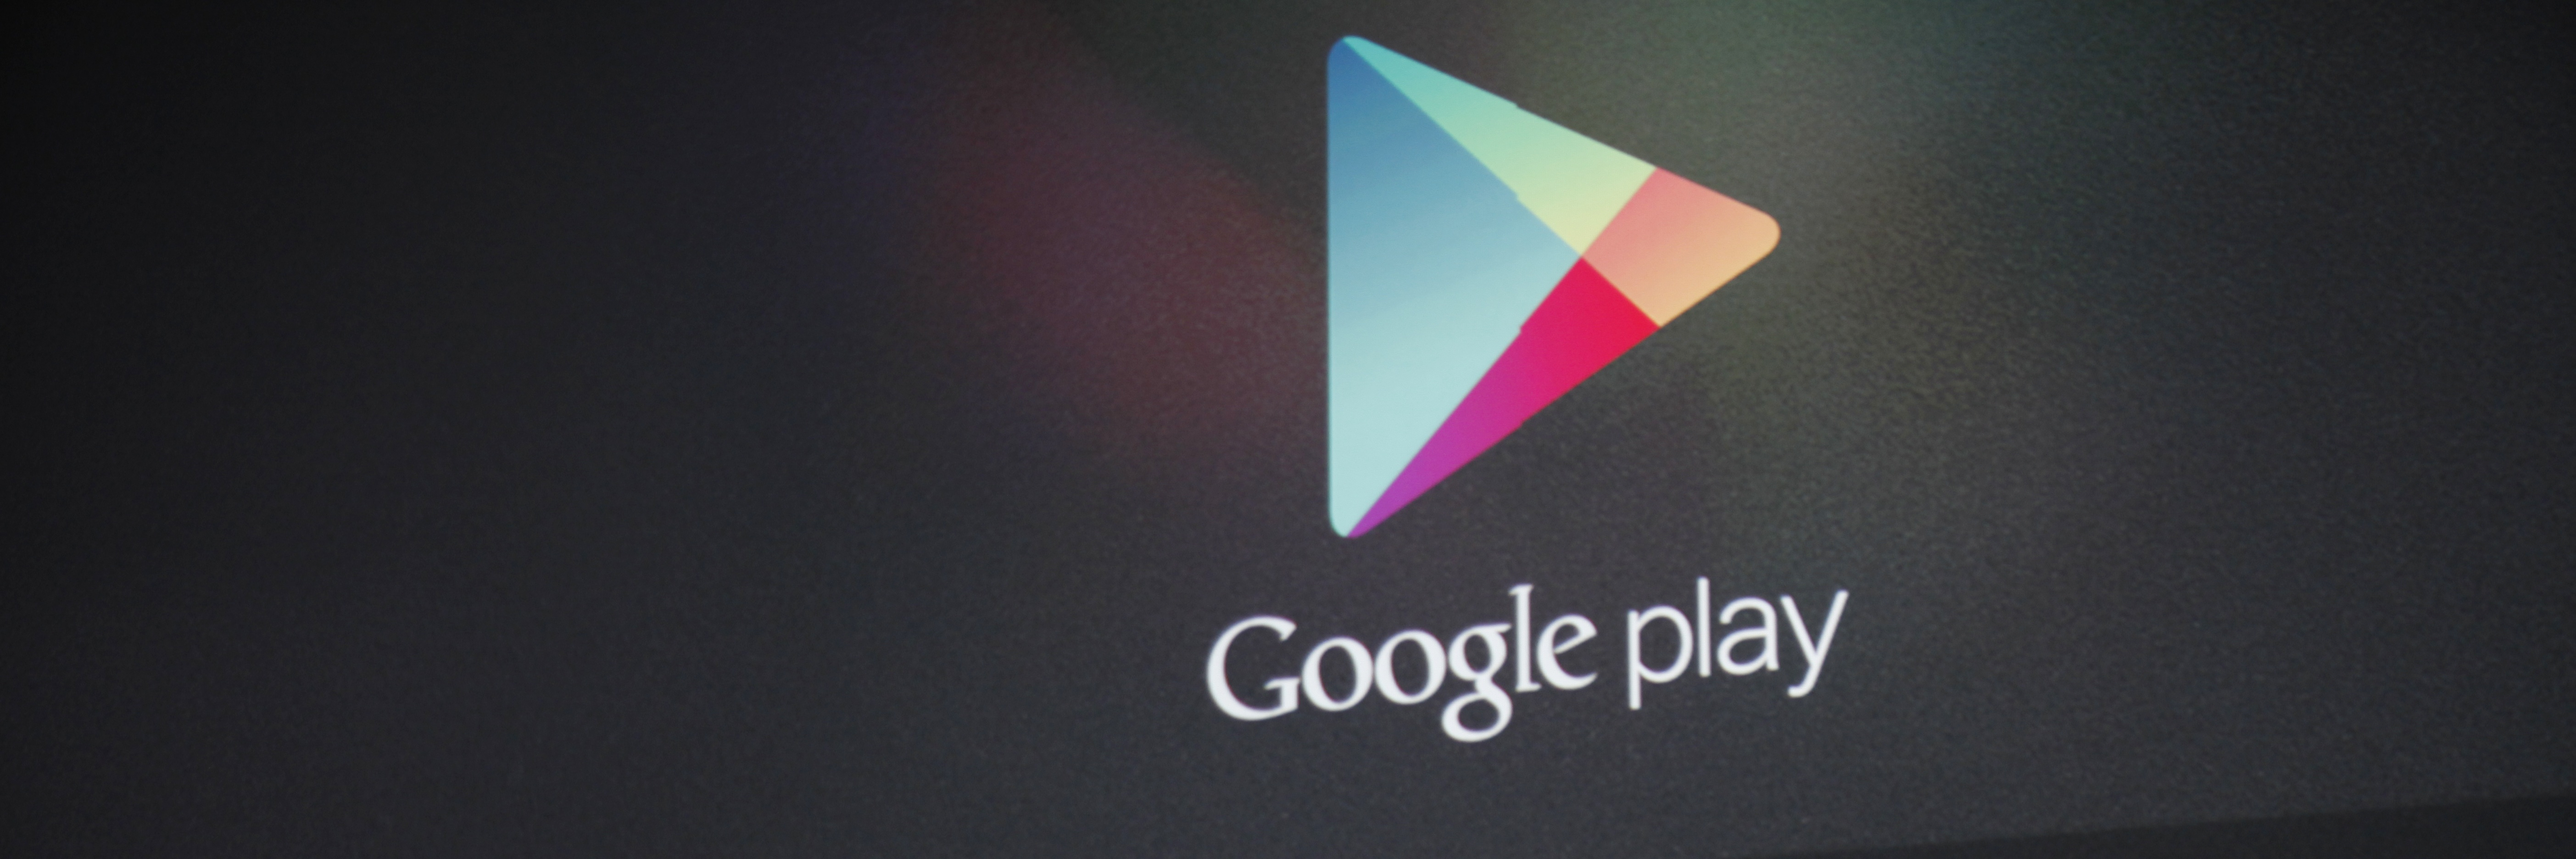 how to buy google play gift cards uk